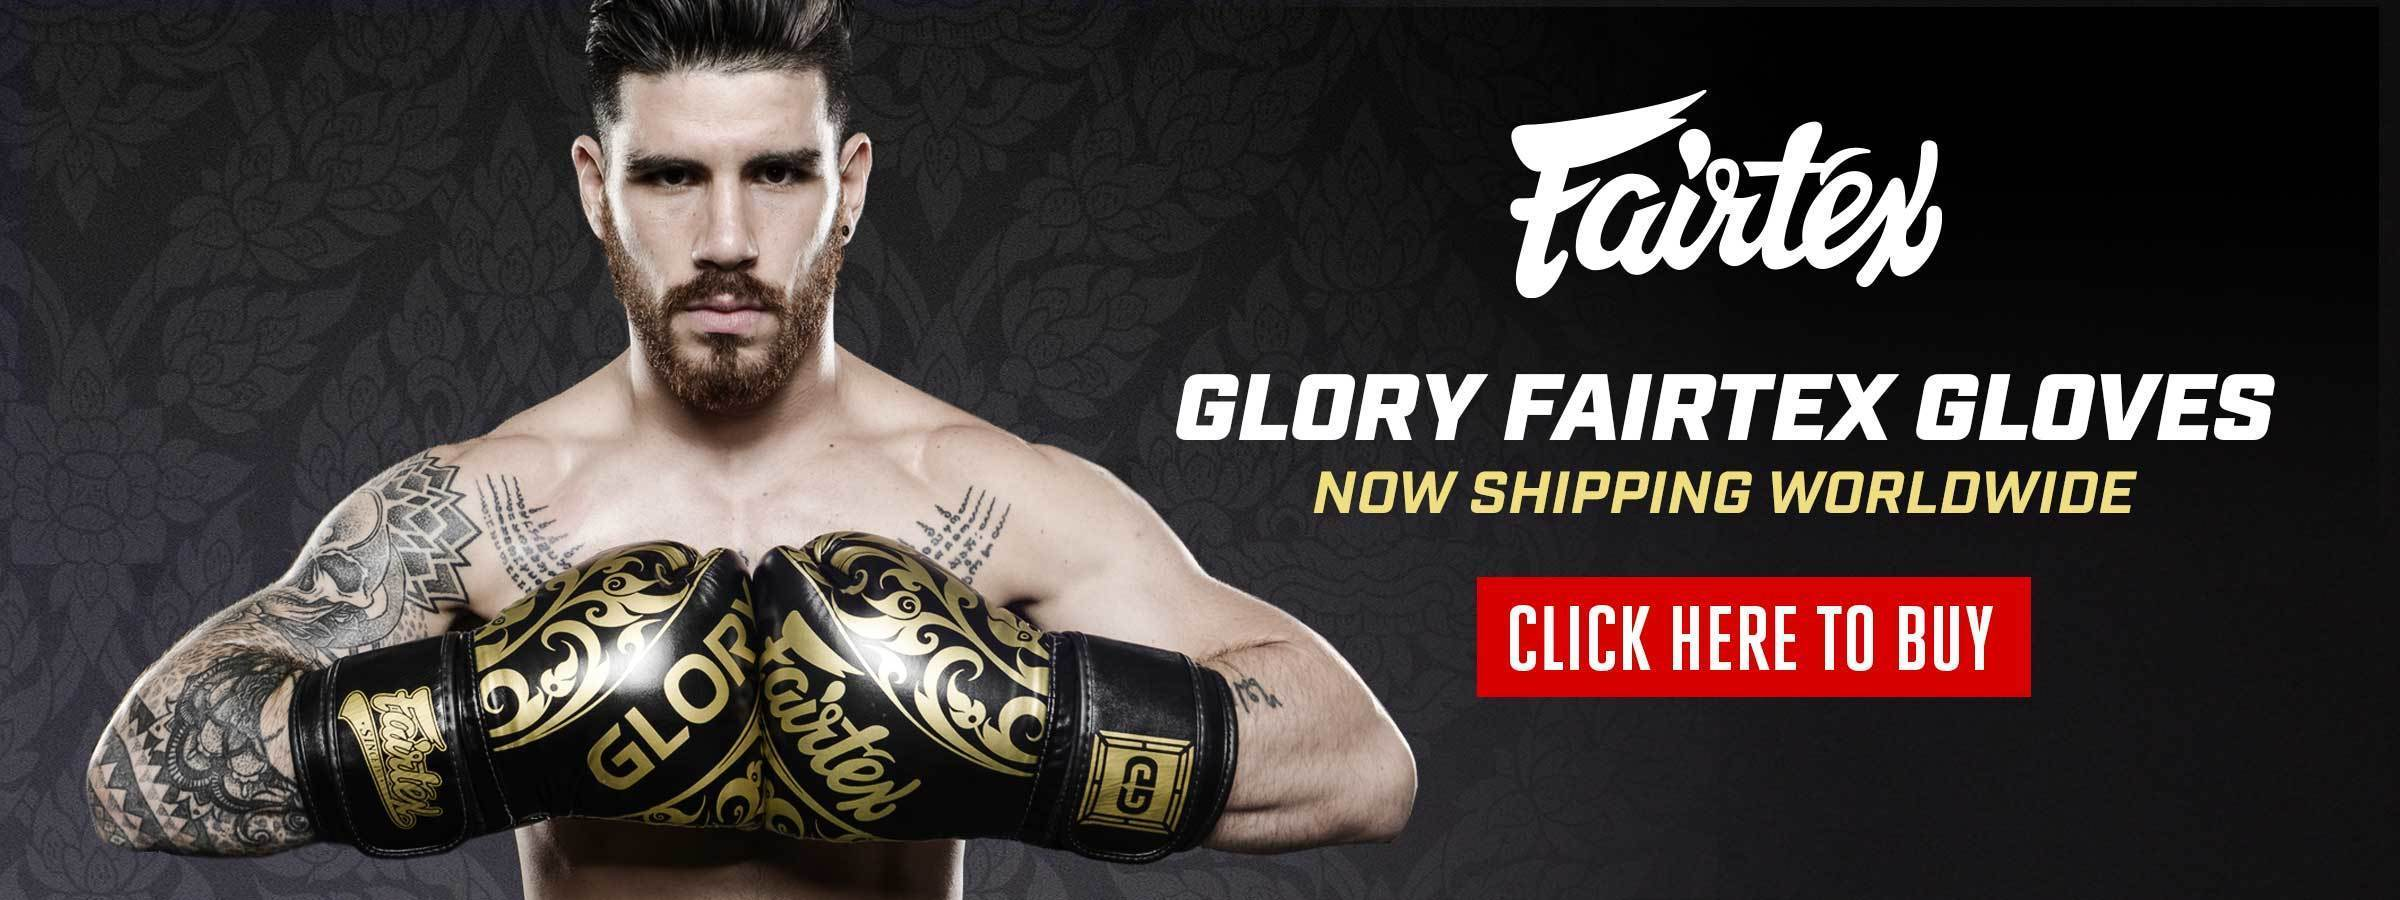 Glory Fairtex Gloves